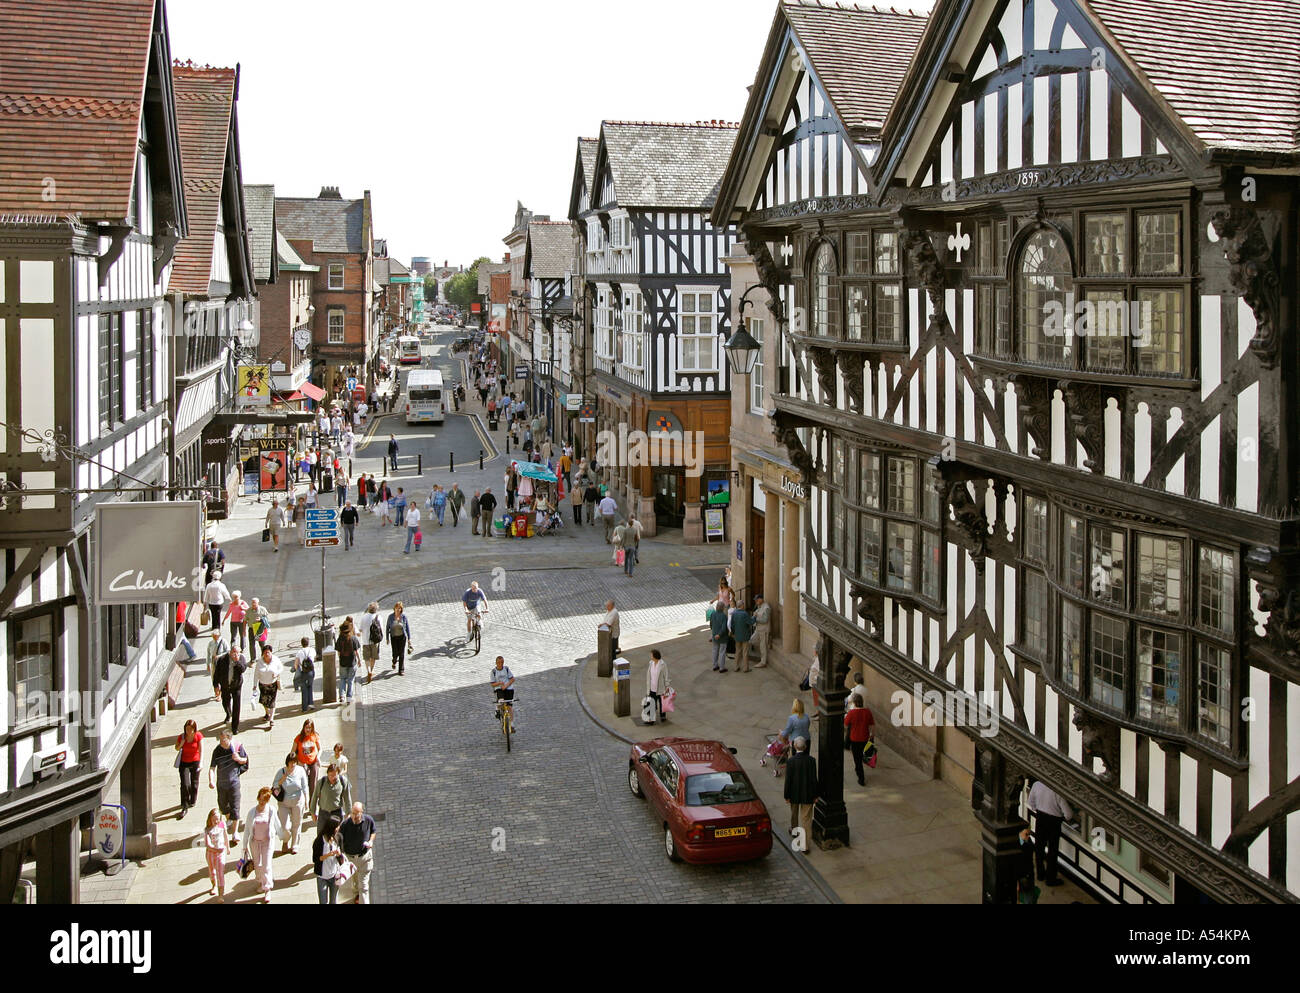 Chester, GBR, 23. Aug. 2005 - View to Foregate St. in Chester. - Stock Image